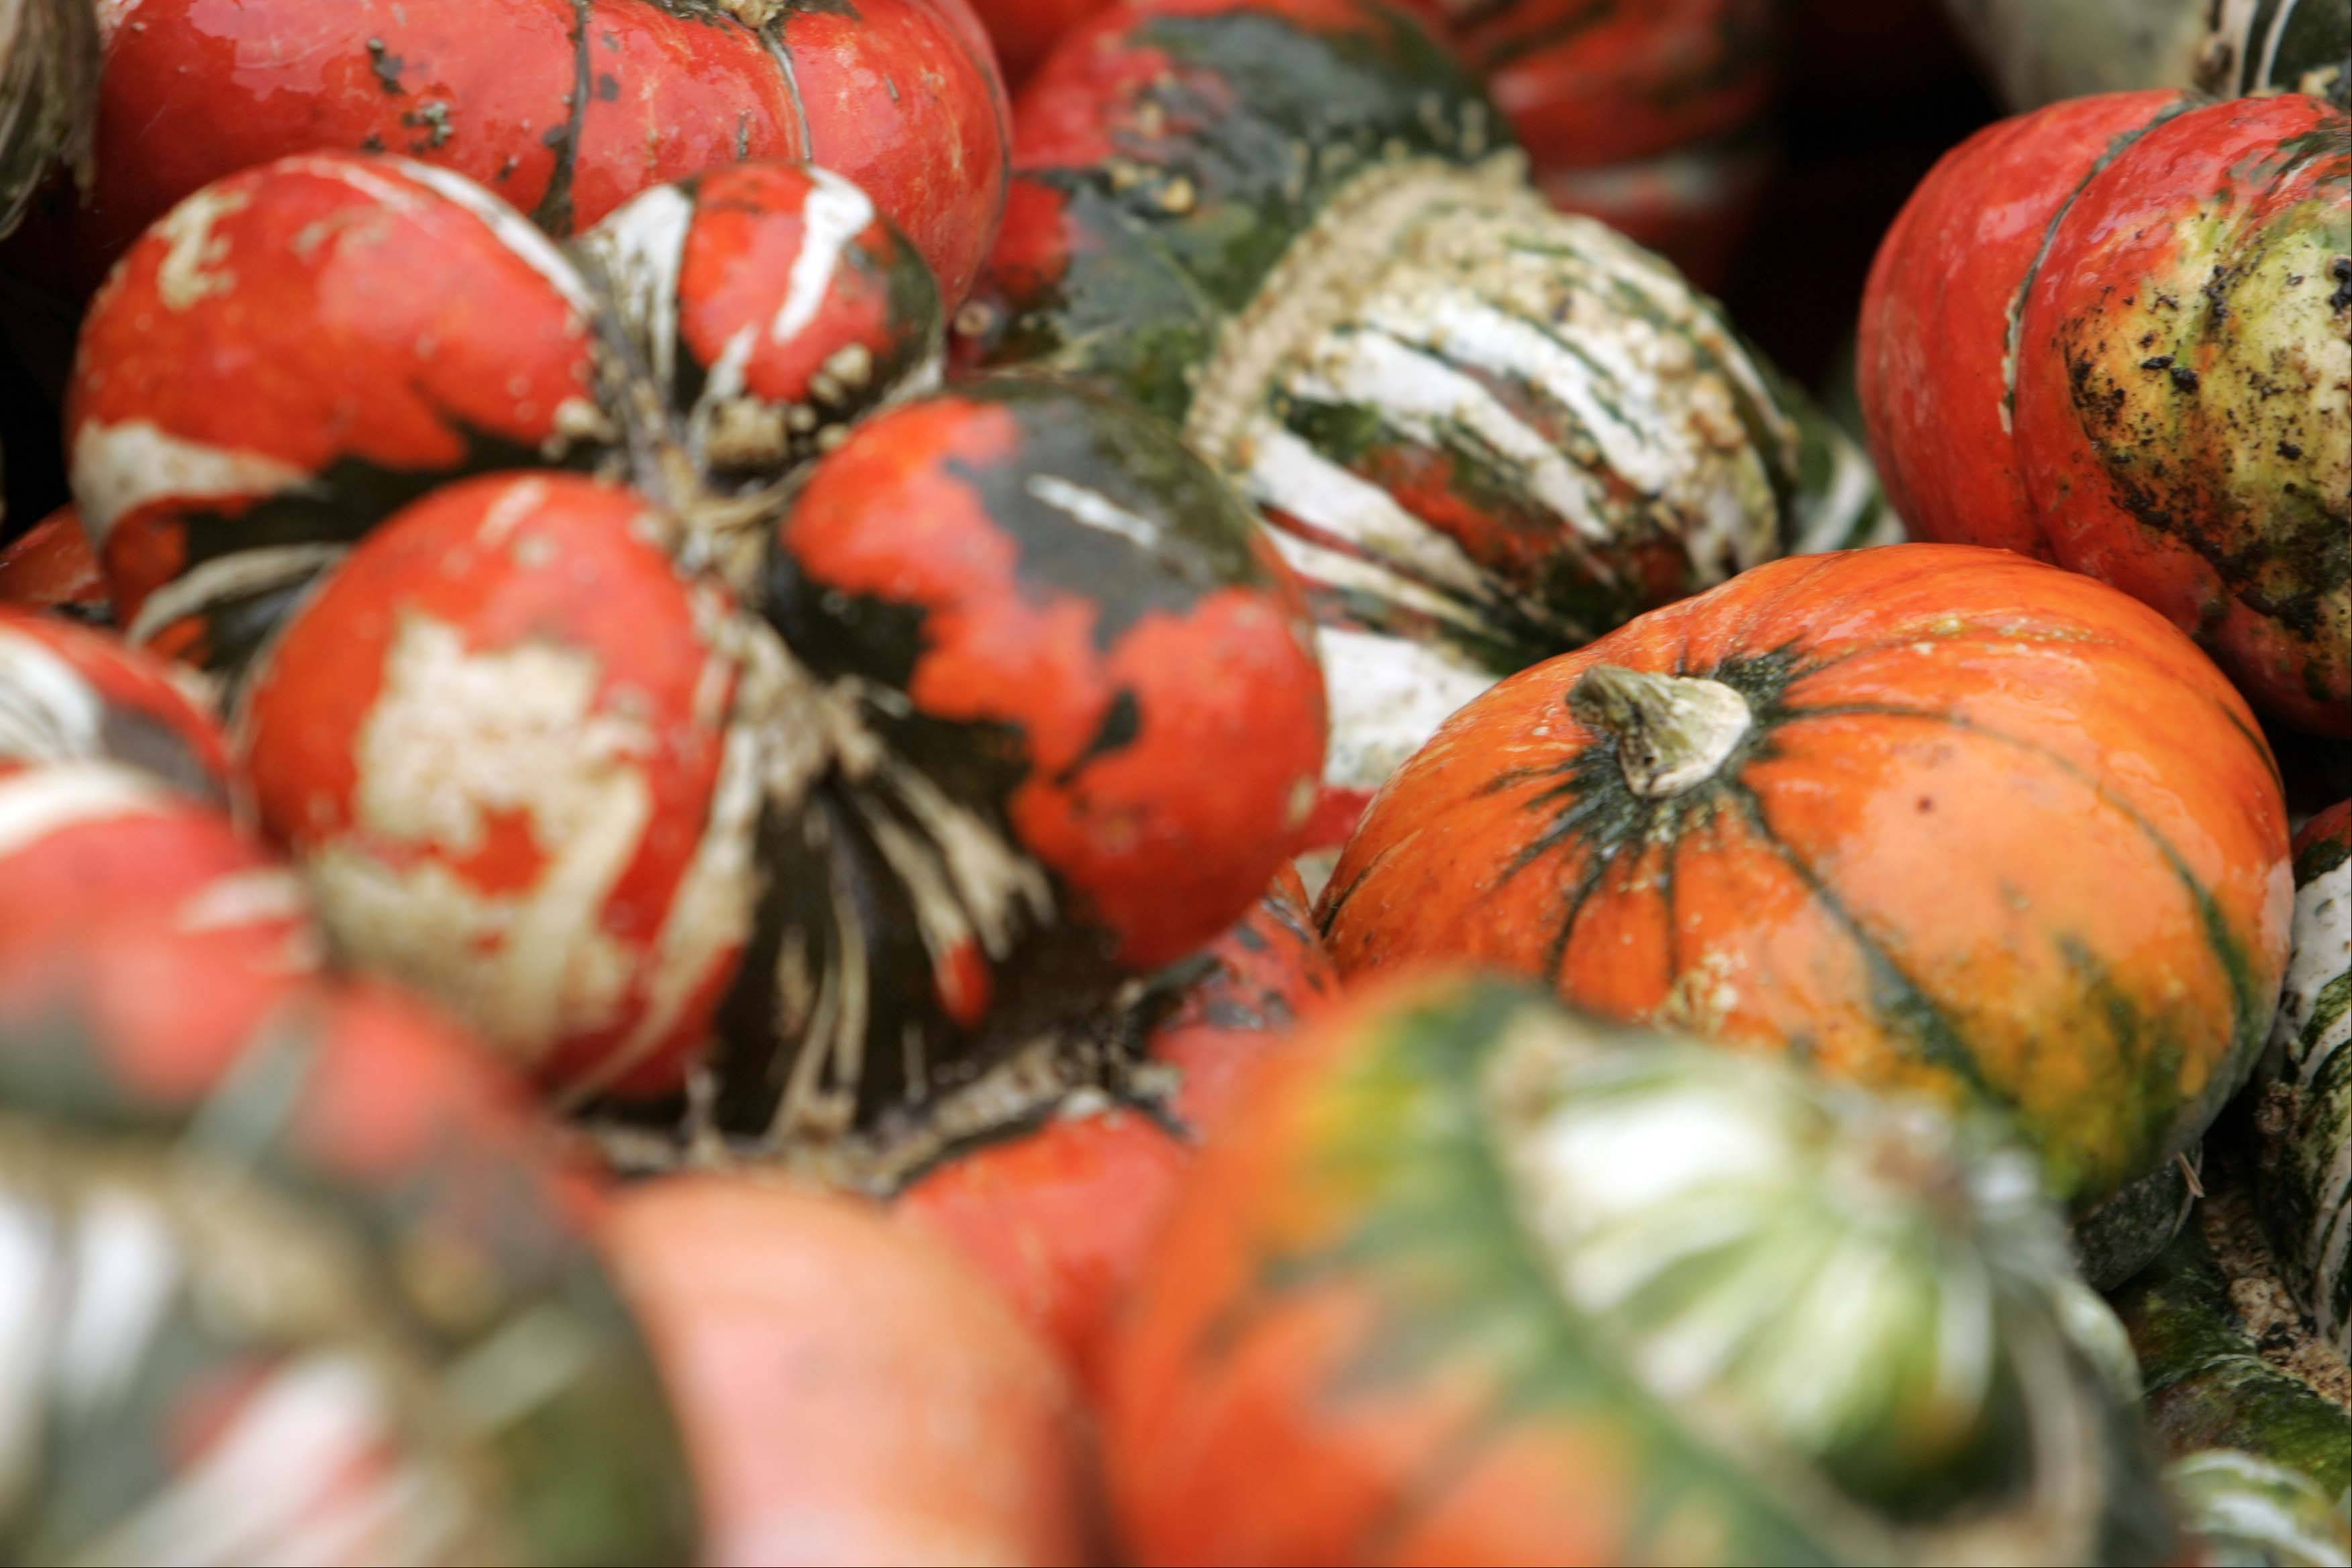 Turk's Turban squash at Randy's Vegetables in Sleepy Hollow.